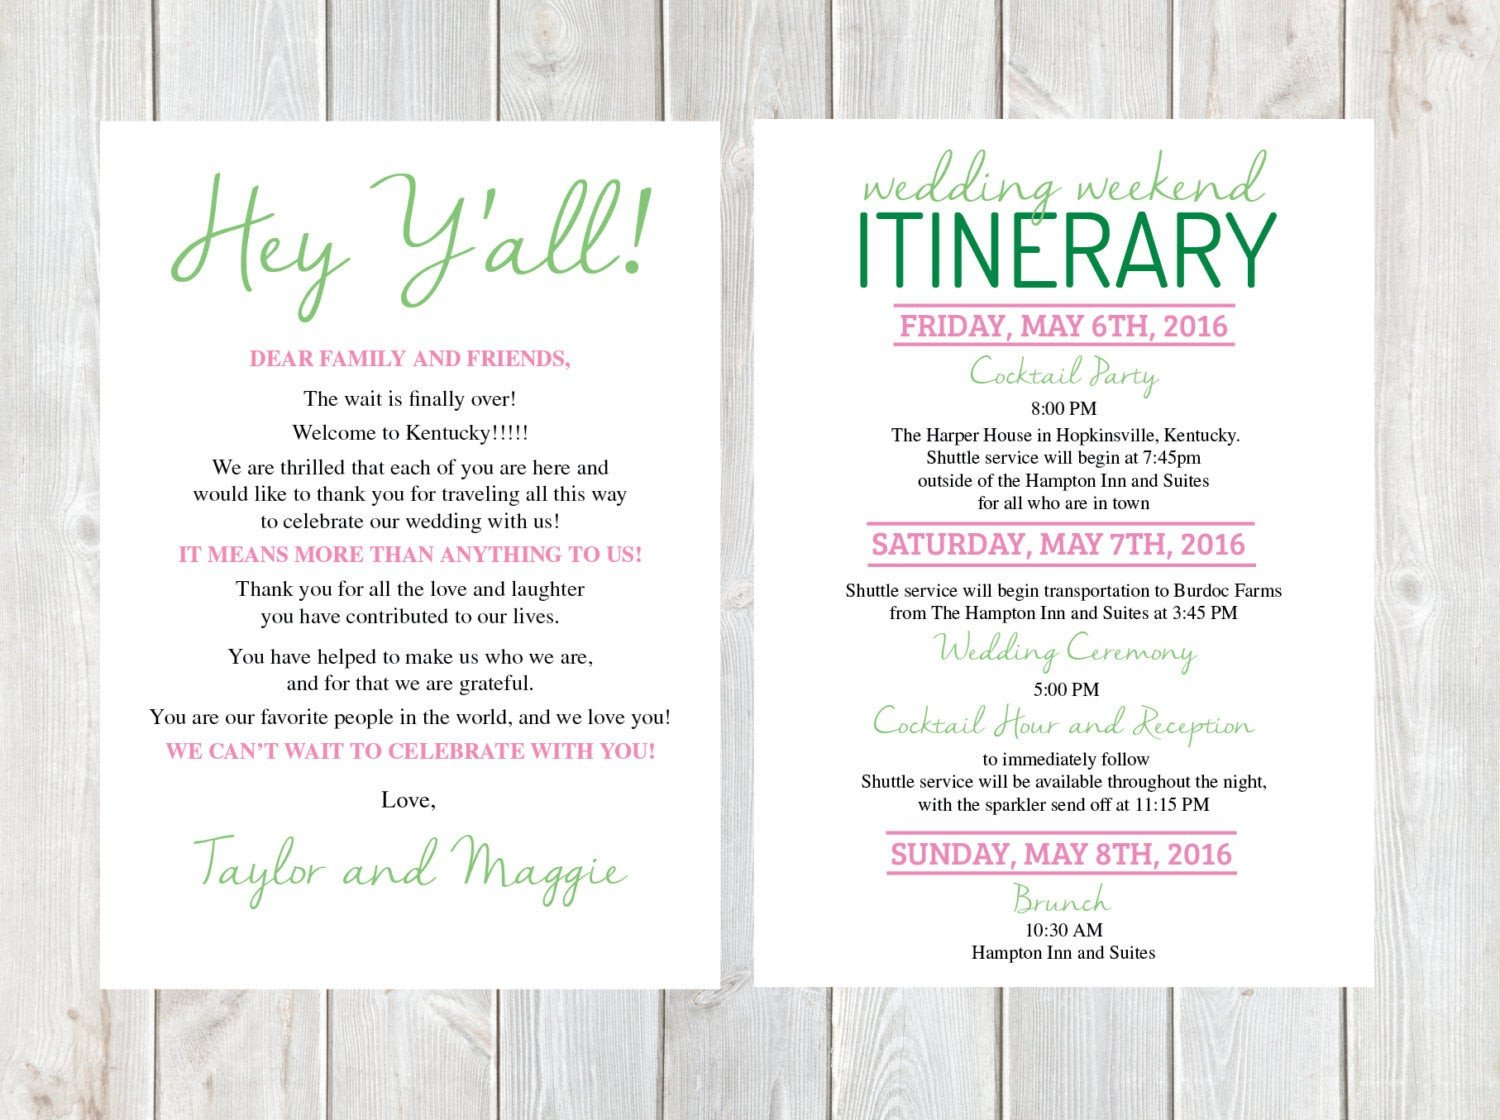 Wedding Welcome Letter Template Wel E Letter Wedding Wel E Letter Wedding Itinerary